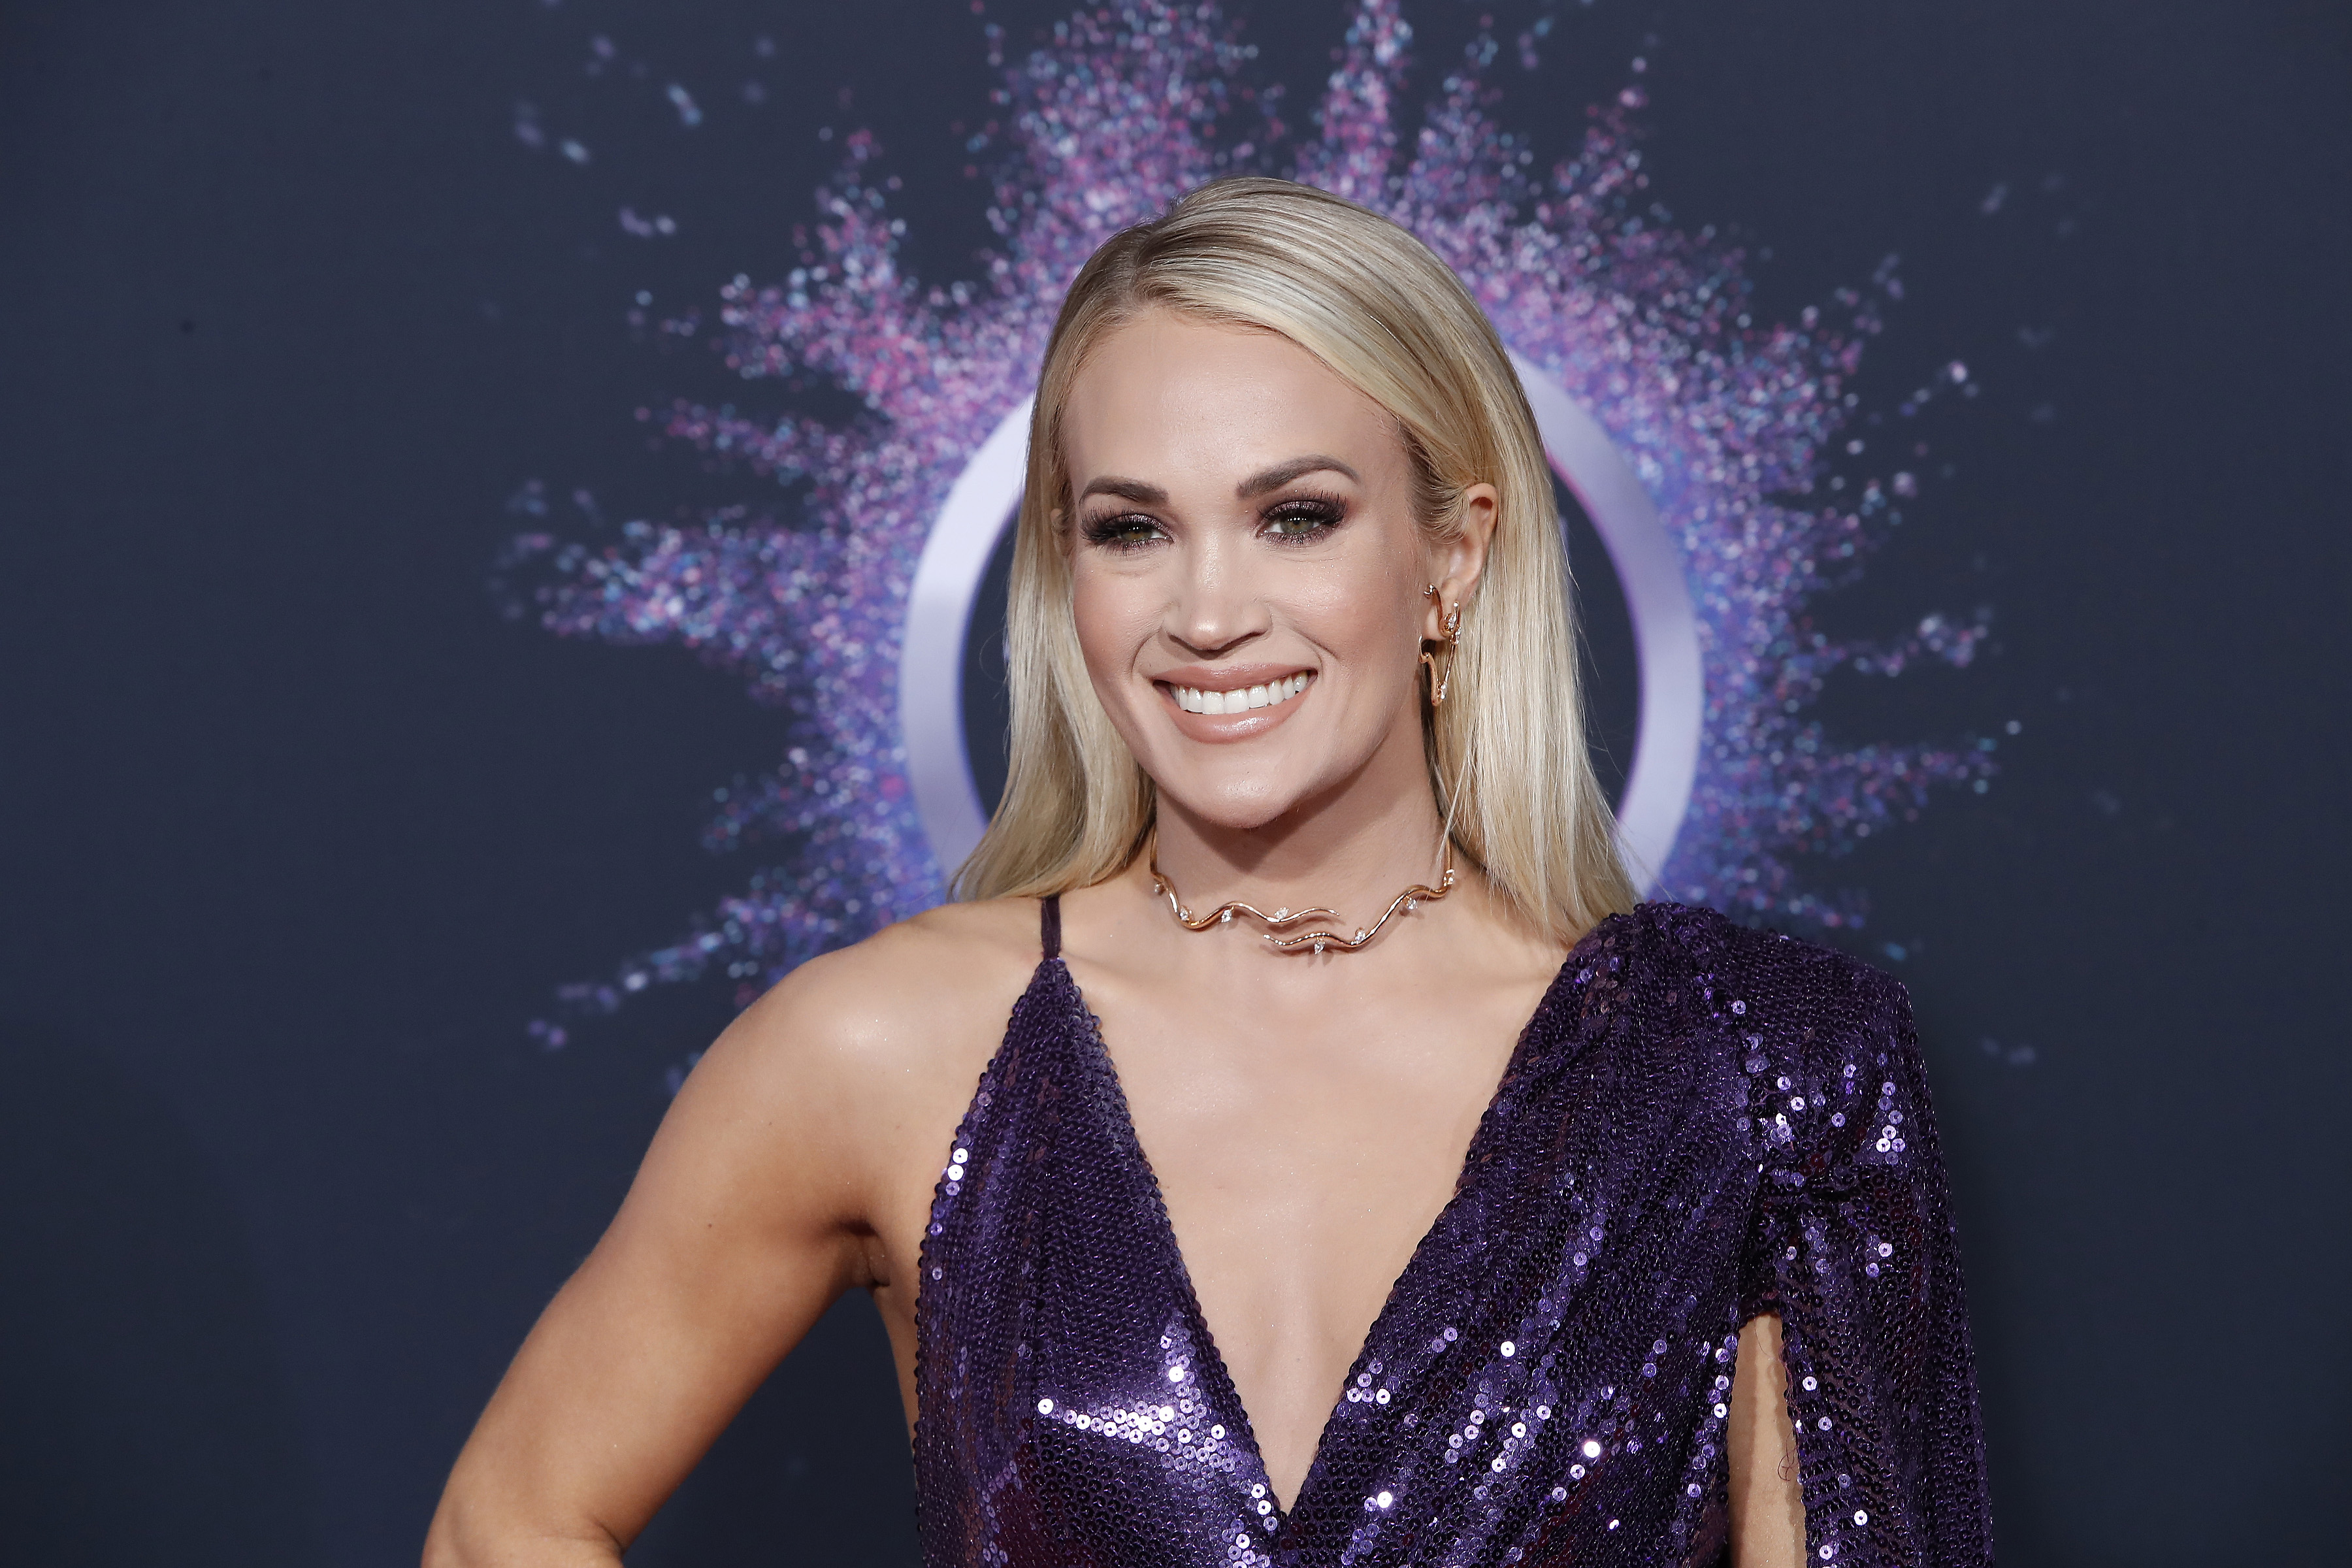 A Plastic Surgeon Weighs In on How Carrie Underwood Recovered Flawlessly After Horrific Fall